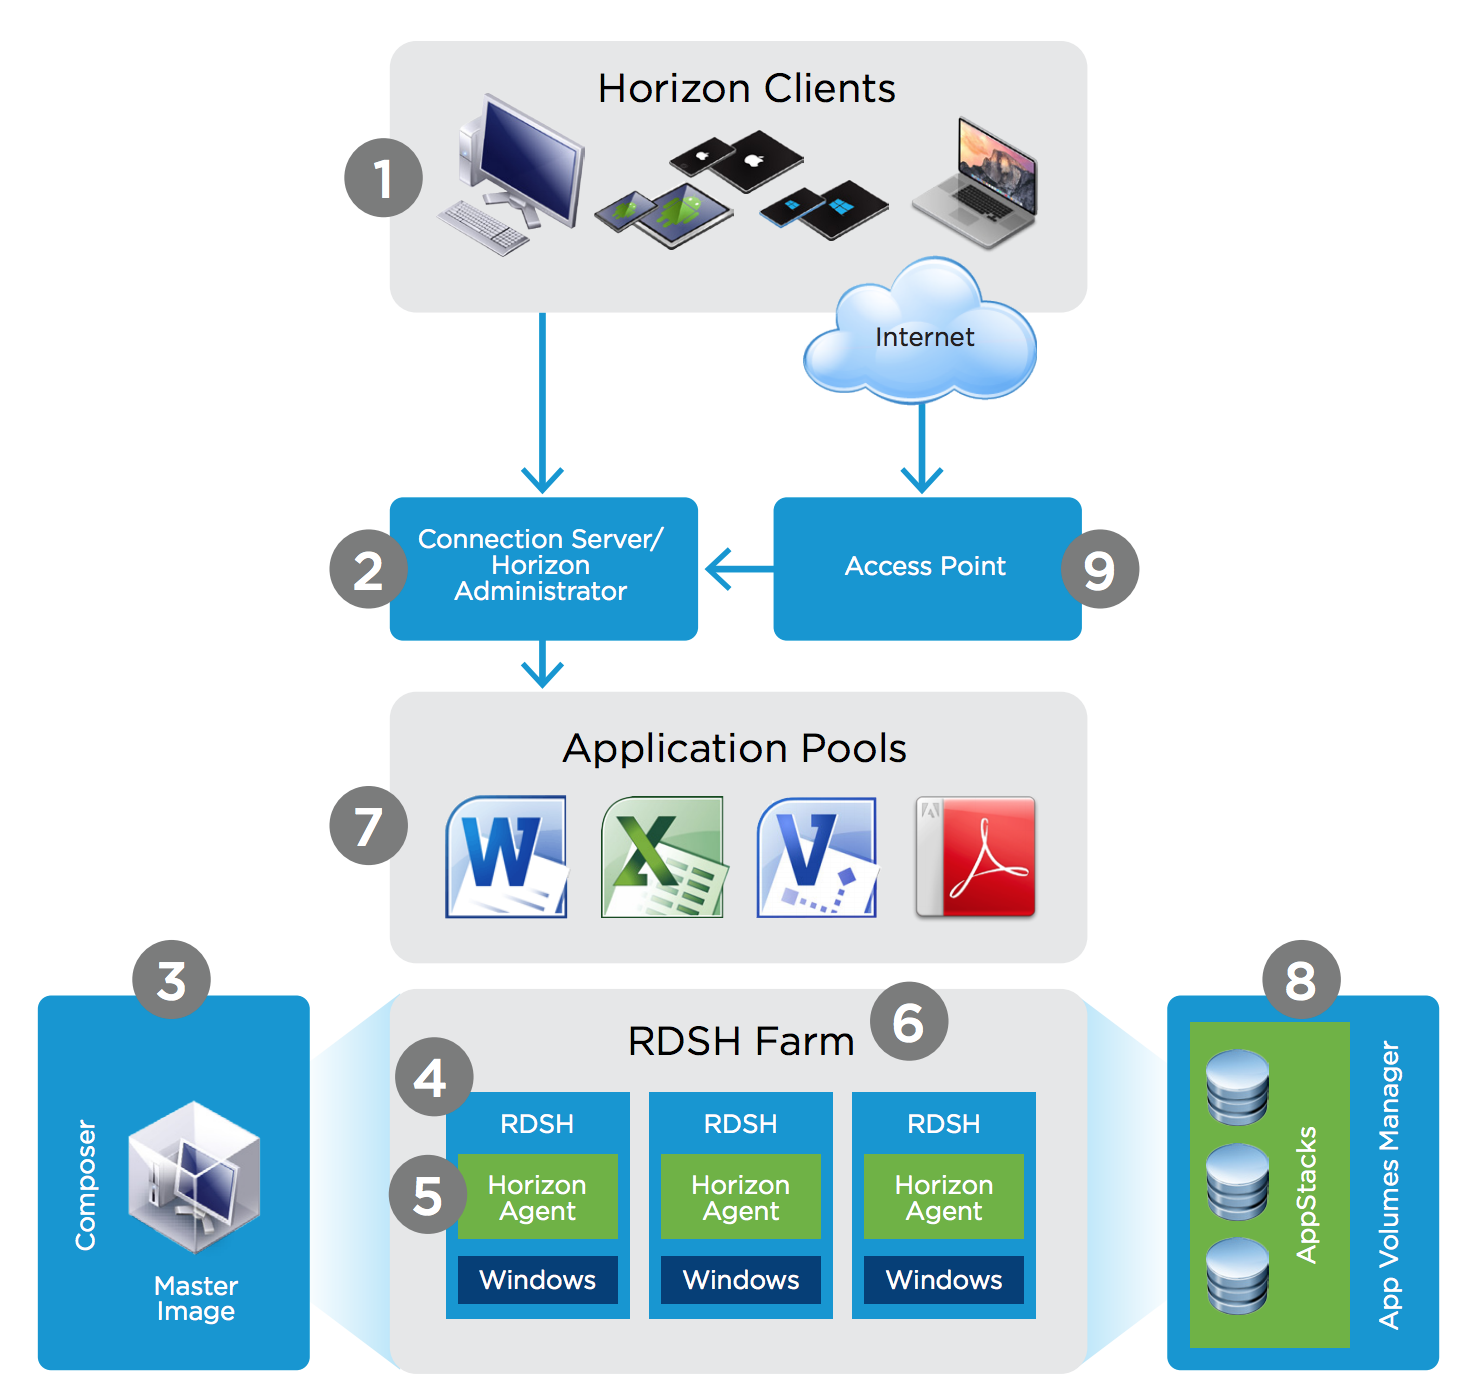 Publishing Applications with VMware Horizon 7 Quick-Start